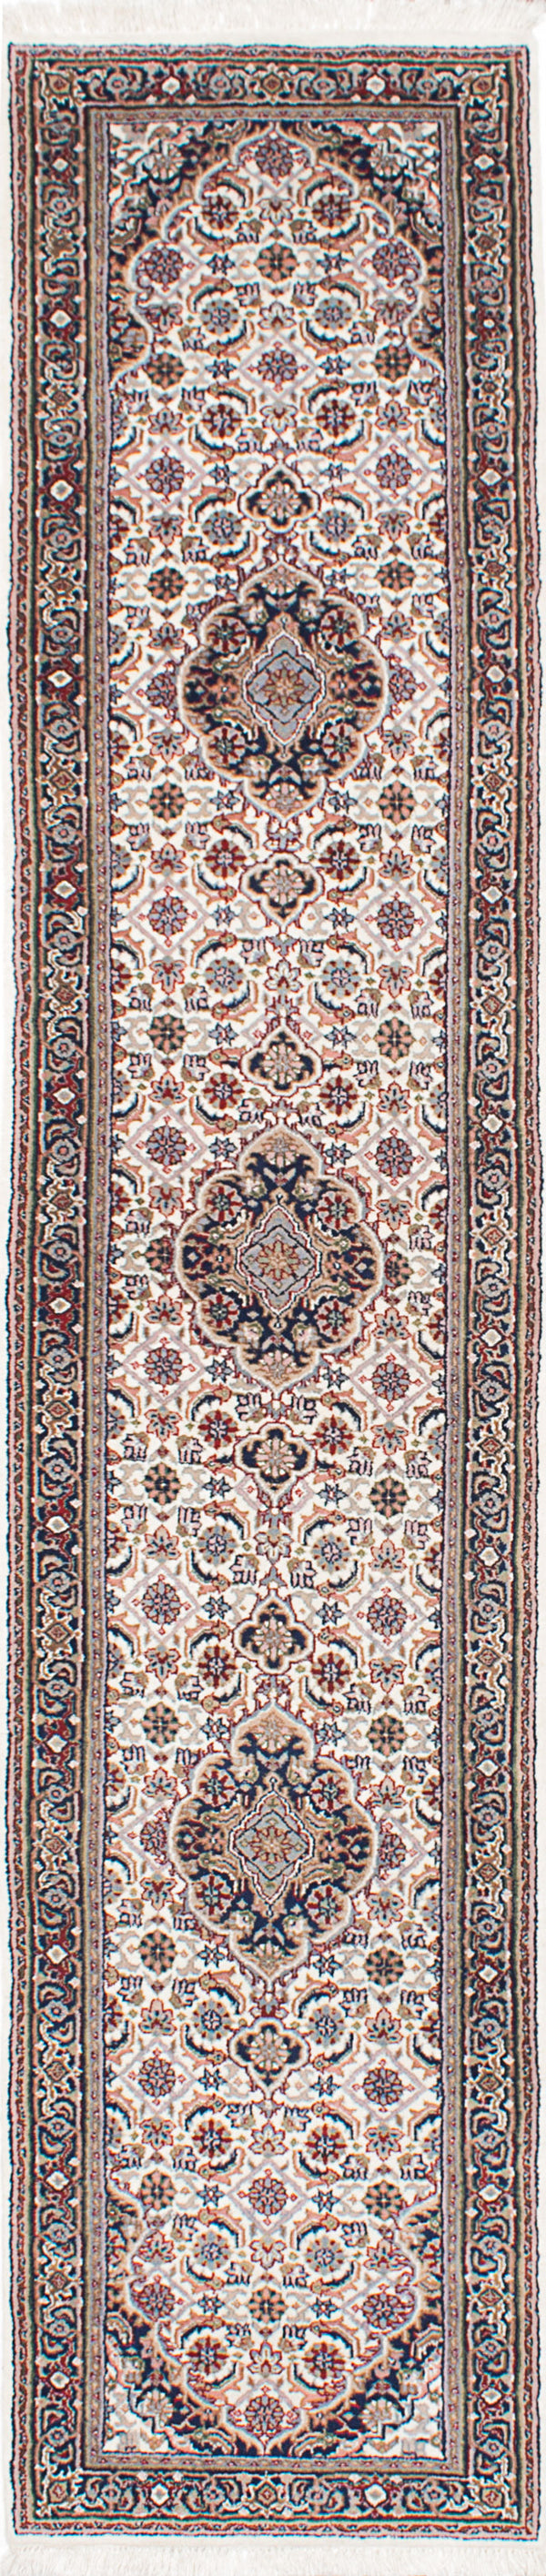 "Hand-knotted Indian Traditional Tabriz-Haj-Jalili Runner rug  Cream 2'7 x 11'9"" """